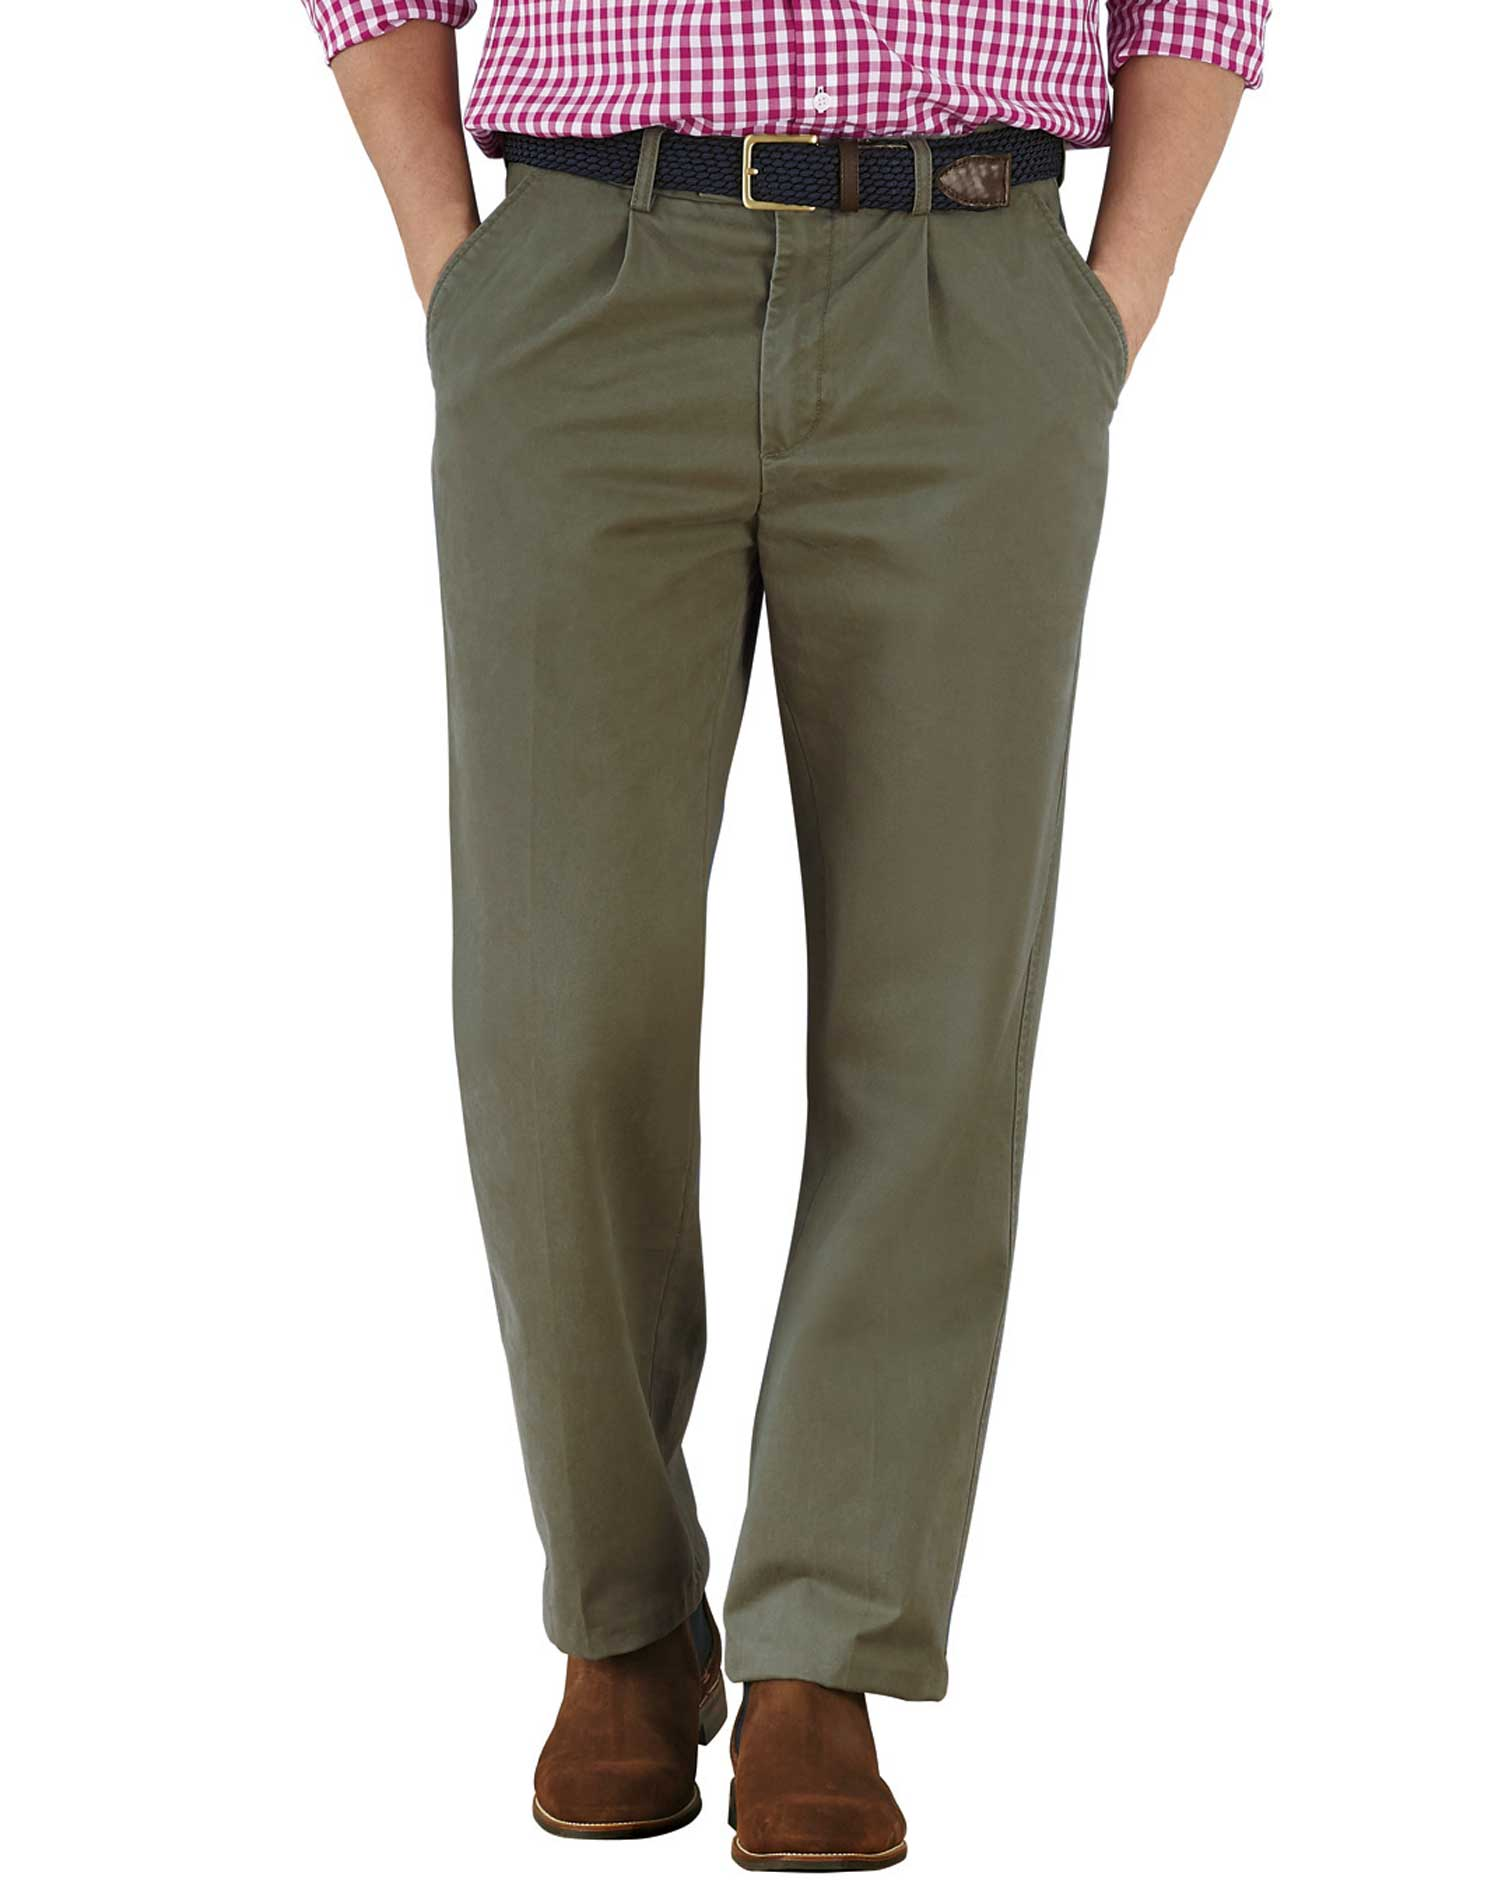 Olive Classic Fit Single Pleat Cotton Chino Trousers Size W40 L34 by Charles Tyrwhitt